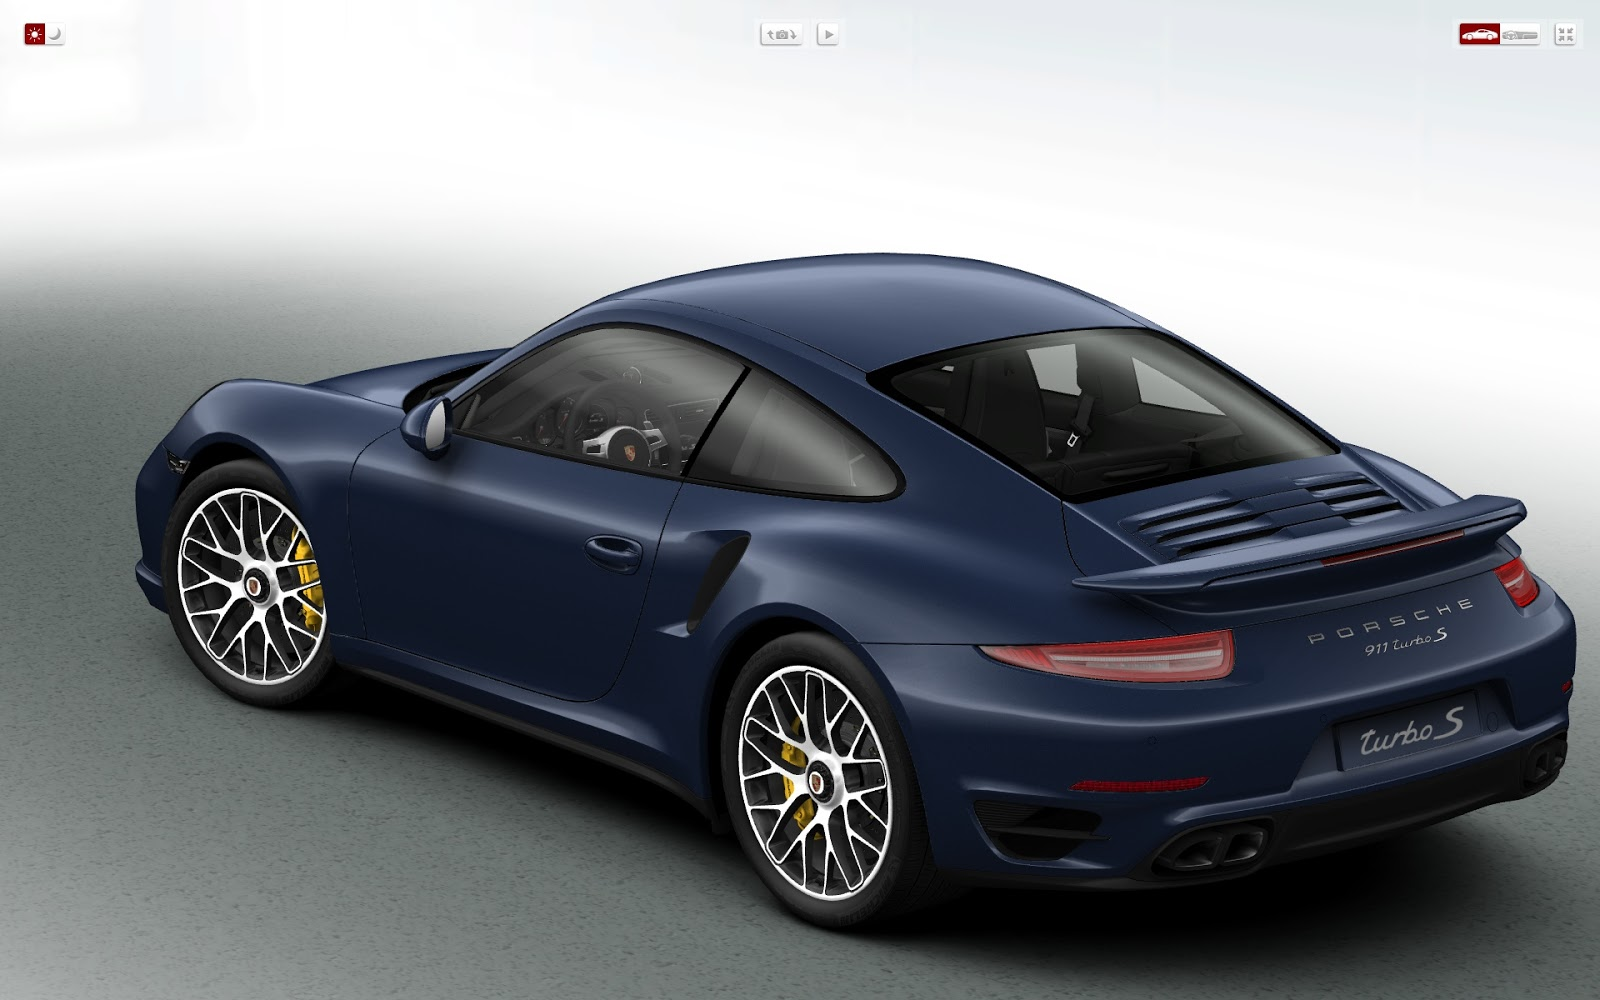 911 Turbo Pictures Amp Videos Porsche 911 Turbo S Car